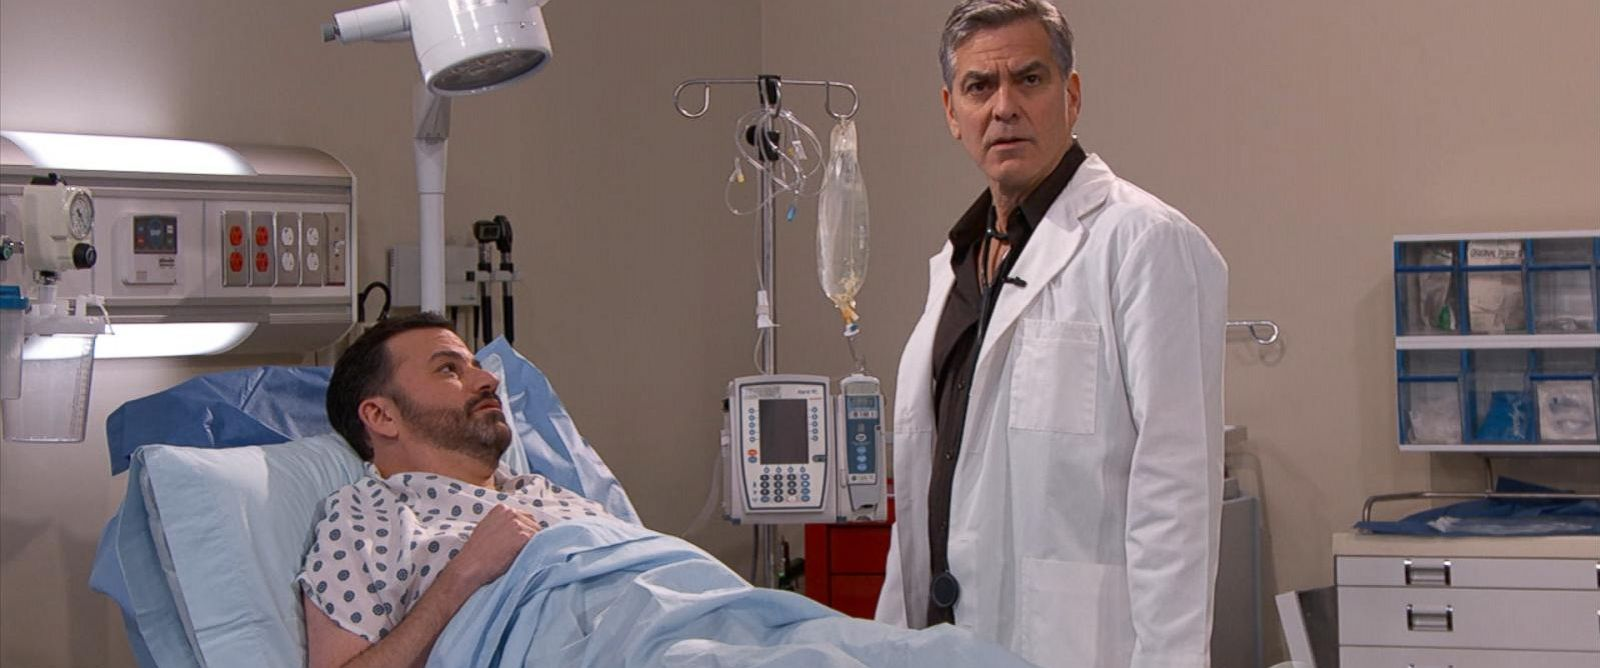 """PHOTO:George Clooney appears in a skit on """"Jimmy Kimmel Live"""" wearing his scrubs from his former TV series, """"ER."""""""